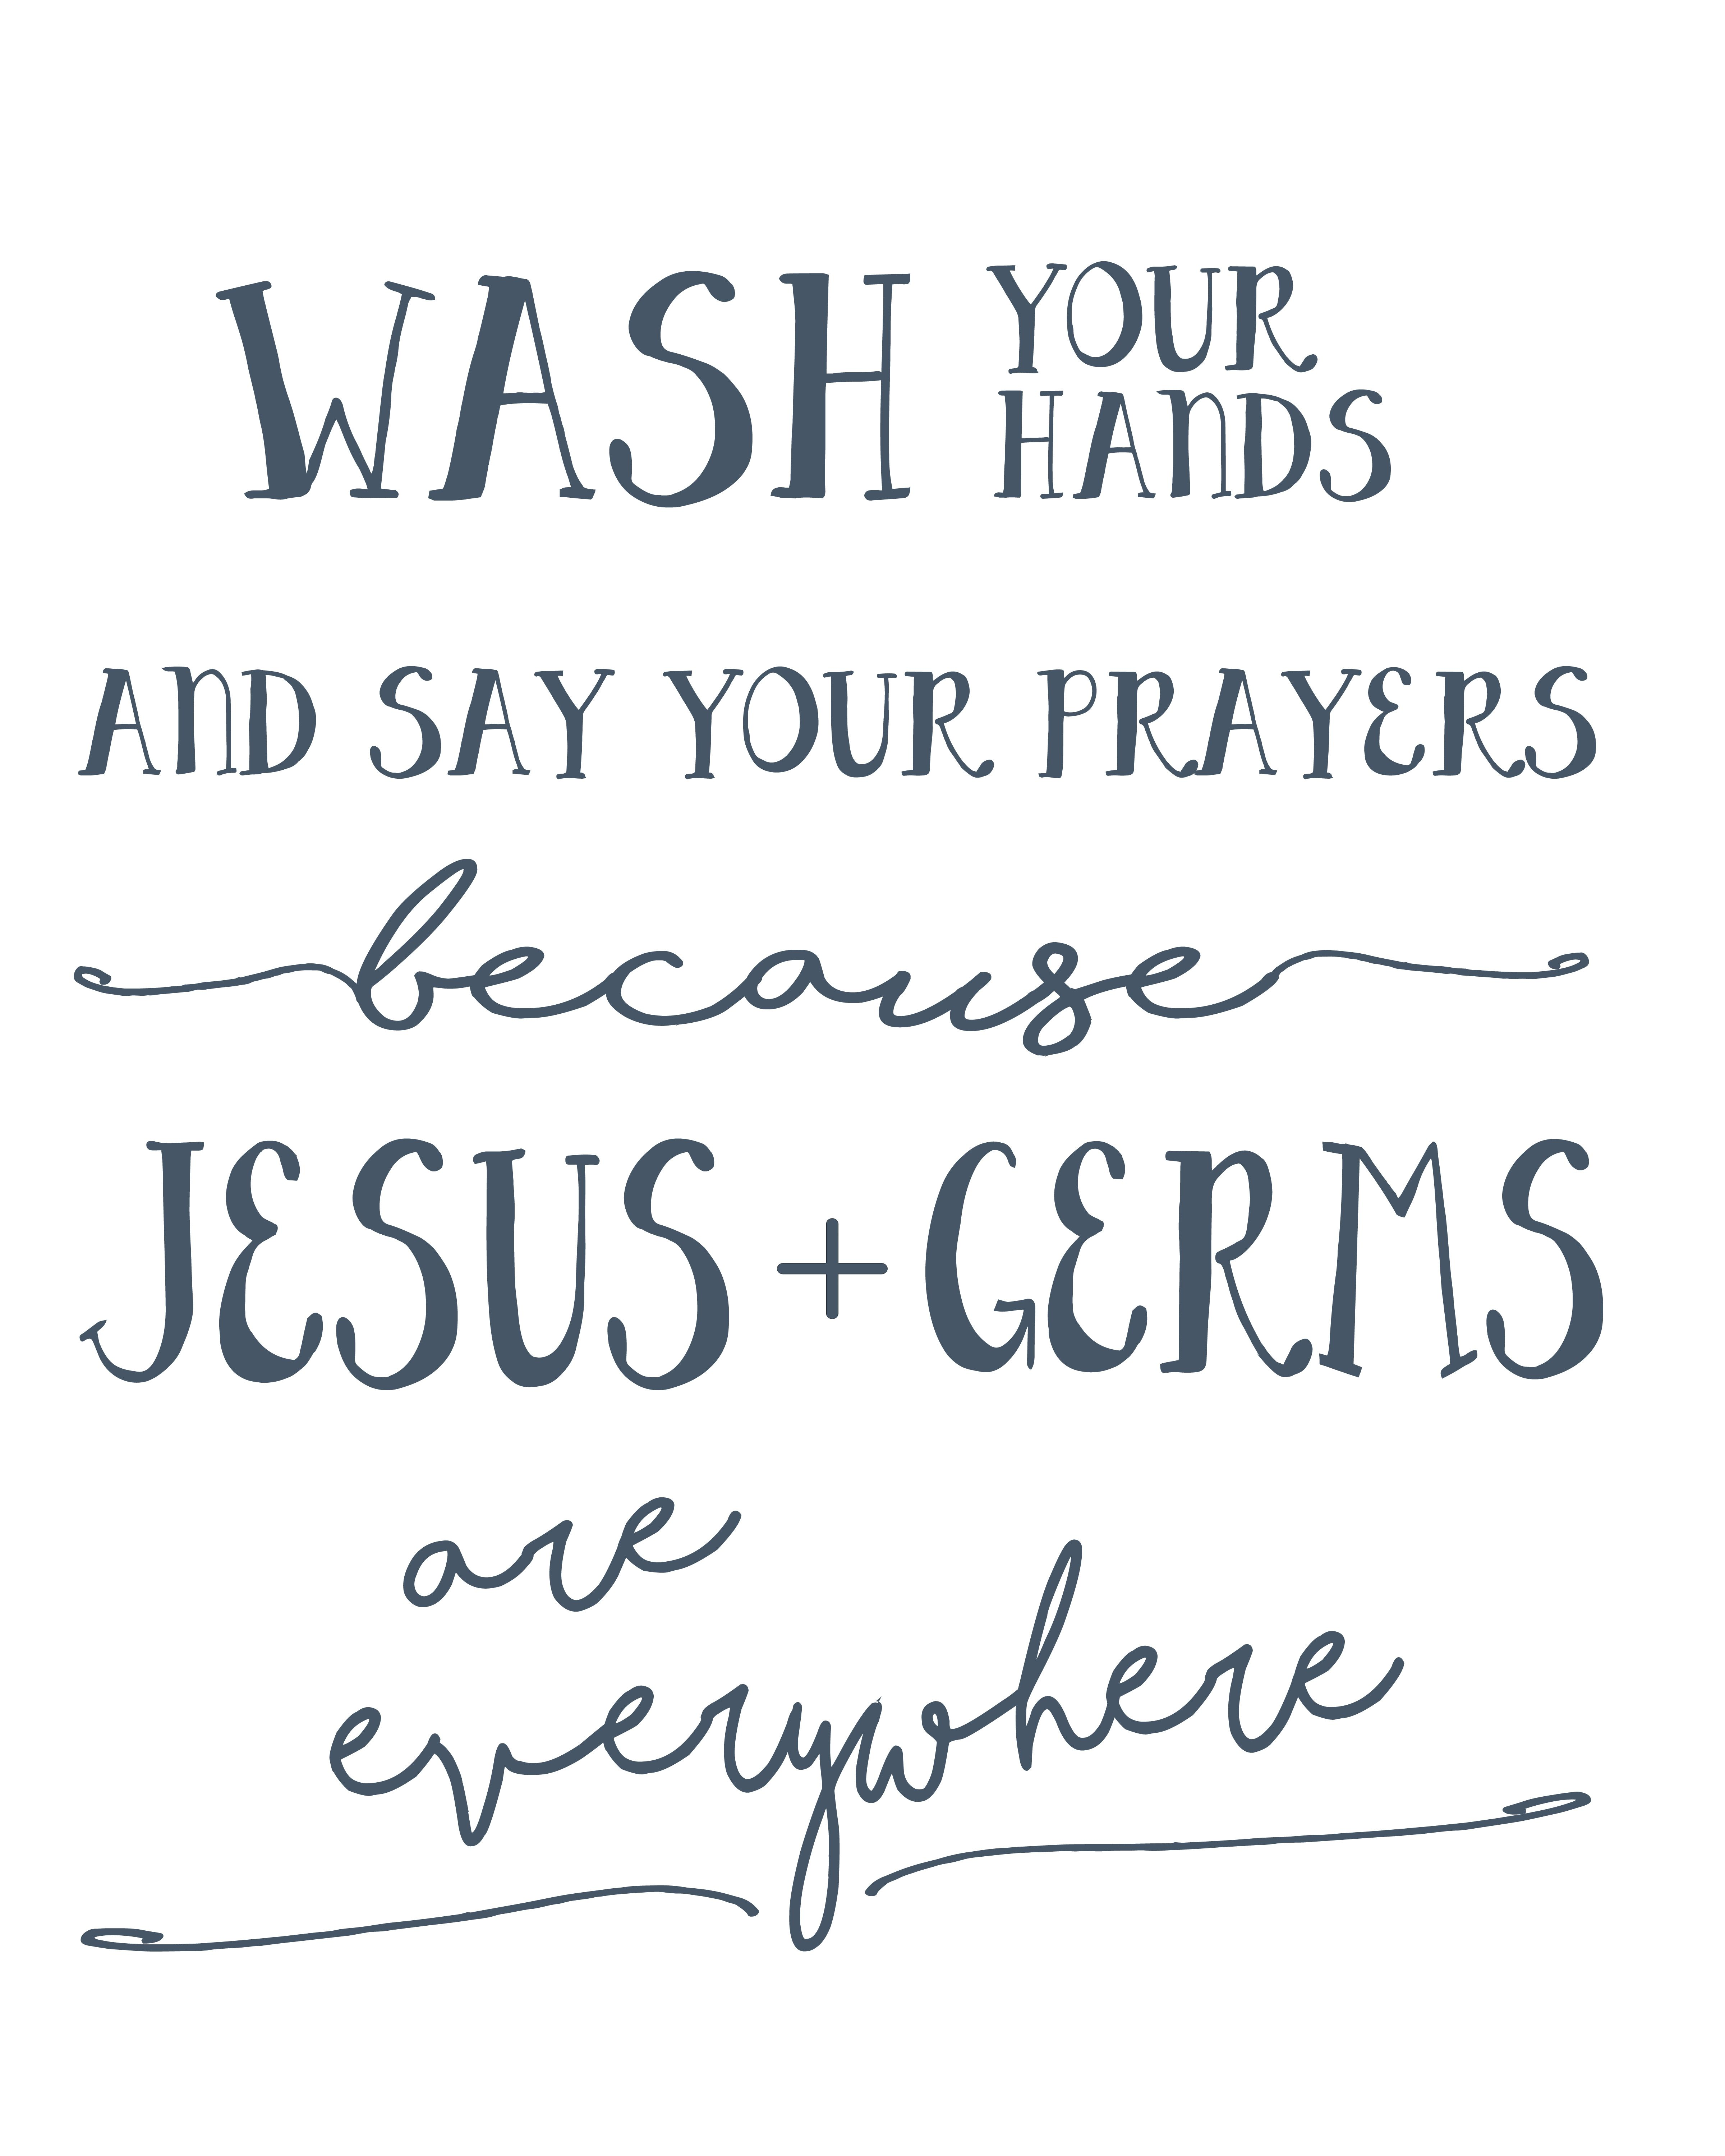 picture about Free Wash Your Hands Signs Printable called clean your palms and say your prayers no cost printable In excess of